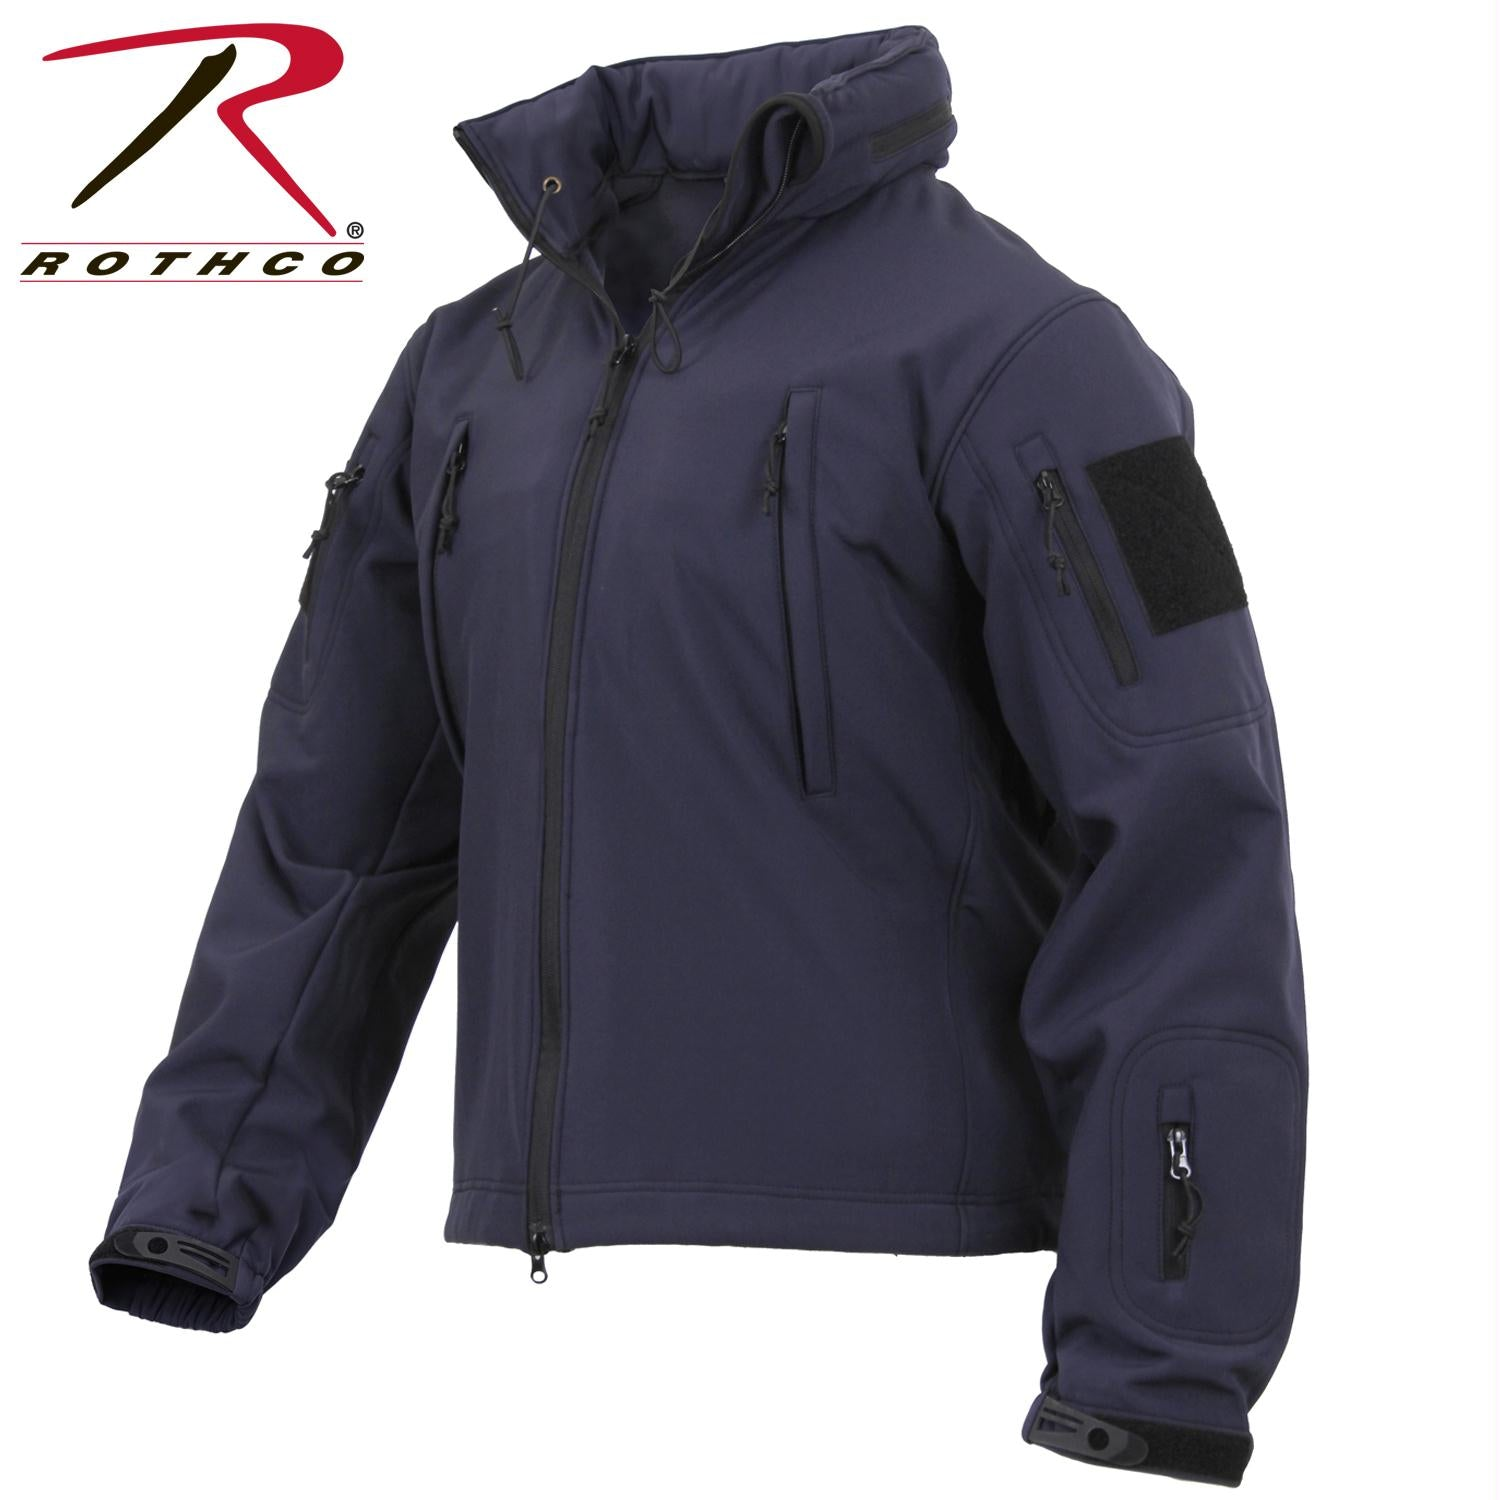 Rothco Concealed Carry Soft Shell Jacket - Midnight Navy Blue / S